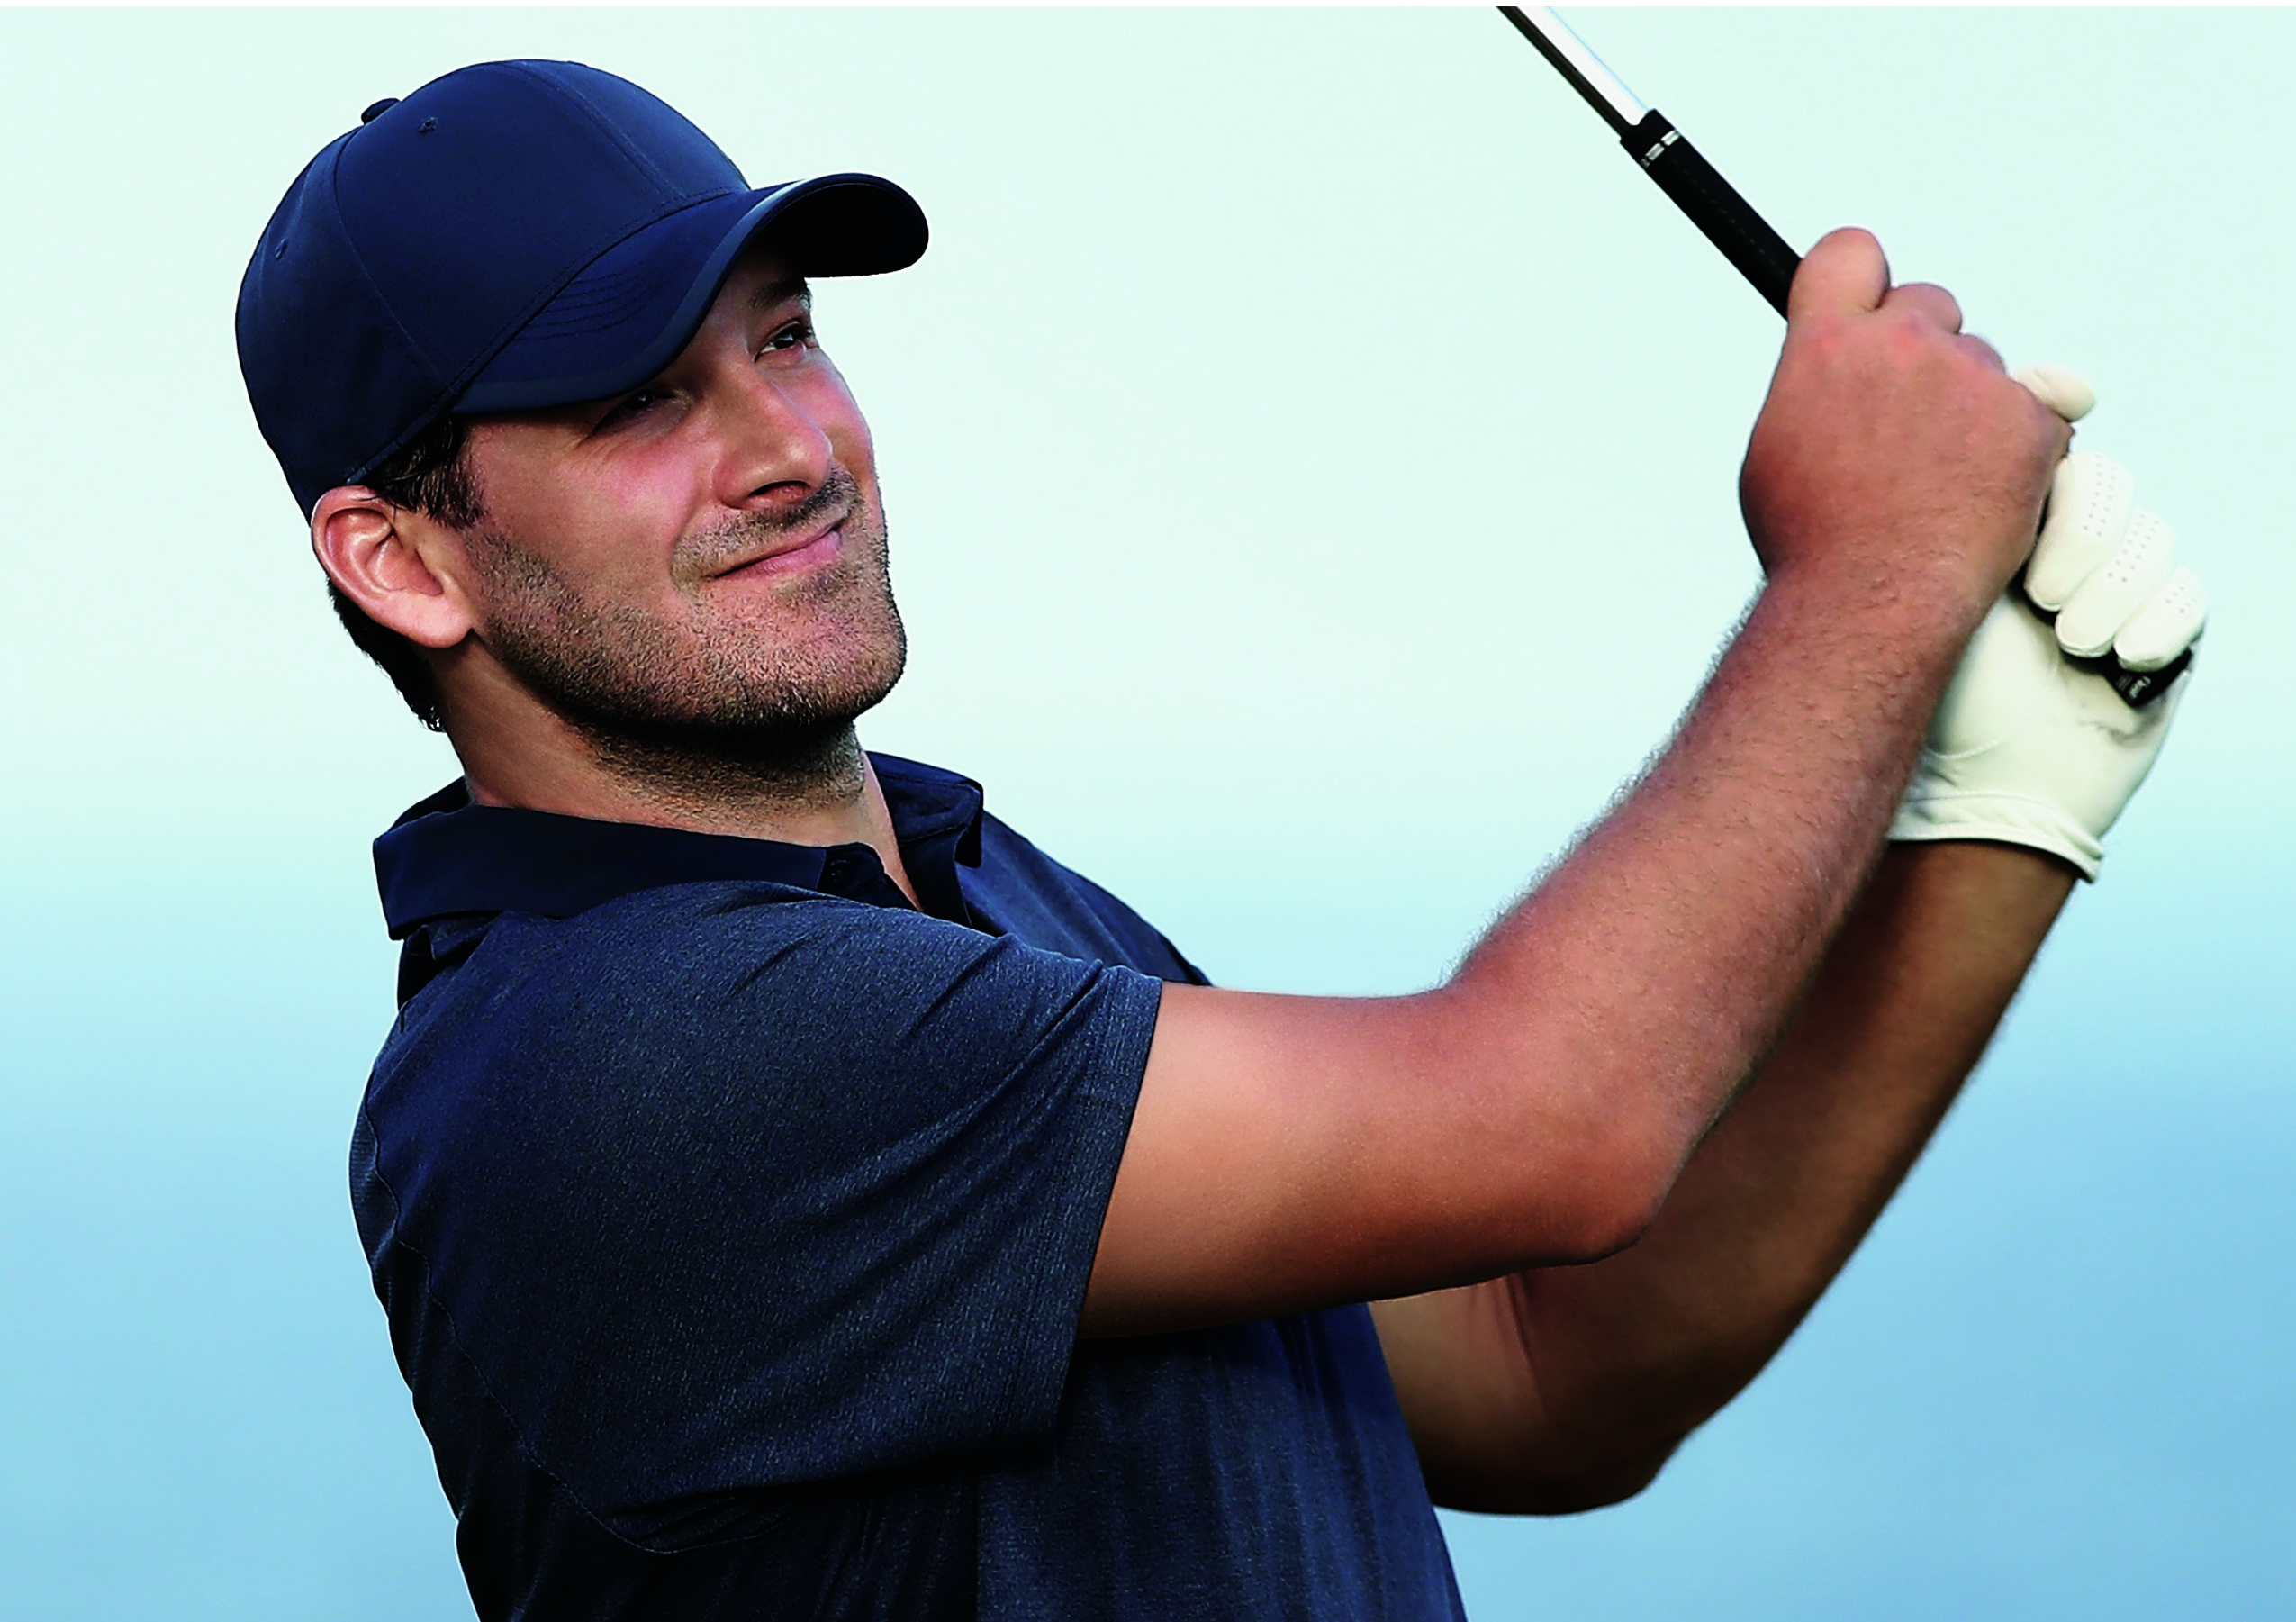 Skechers Ambassador Tony Romo Earns Second Win at American Century Celebrity Championship